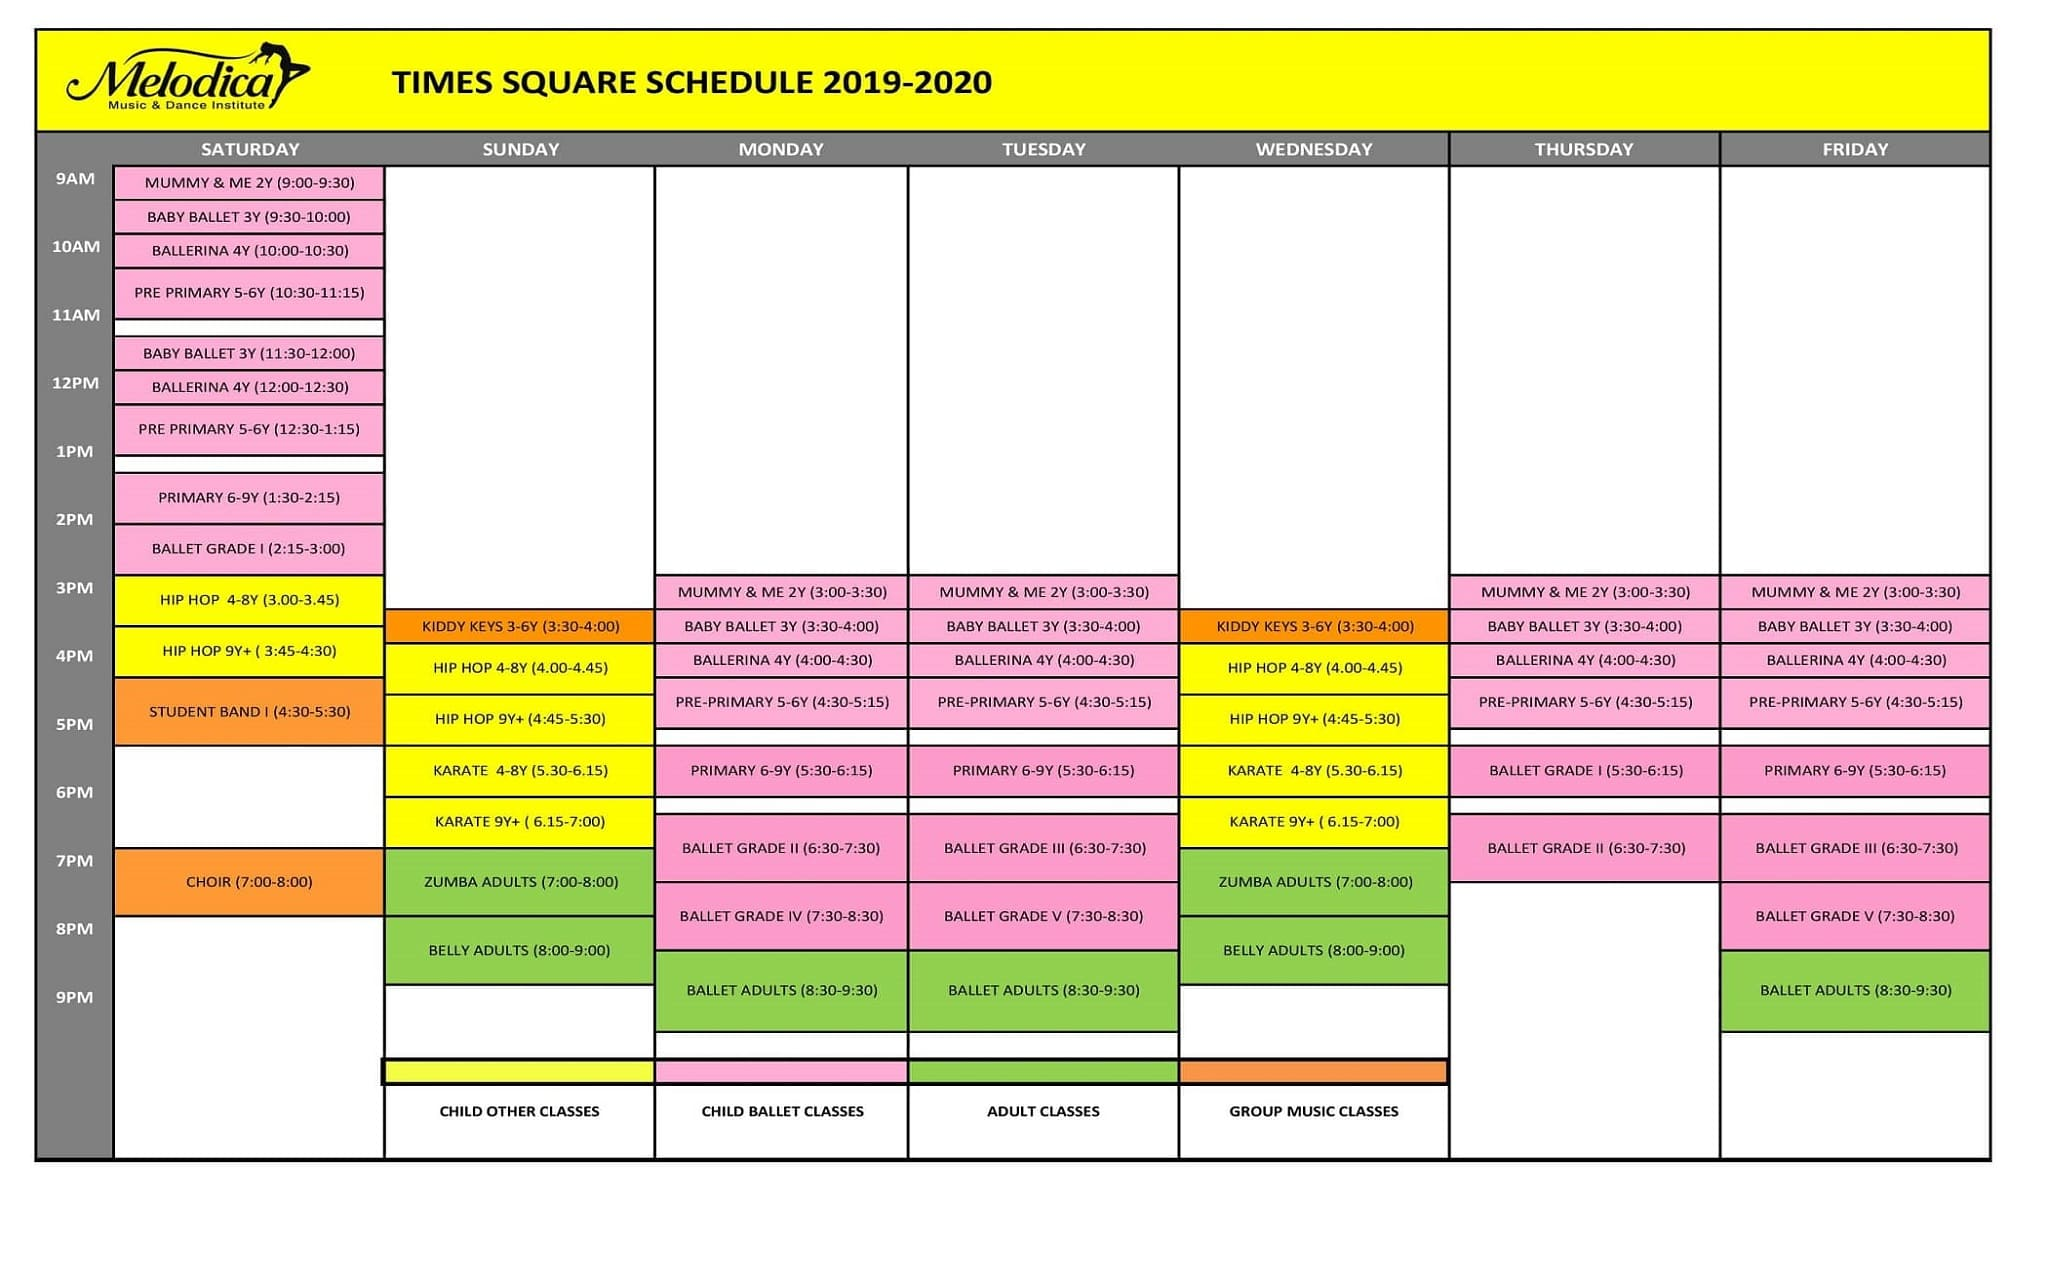 times square time table 2019 - 2020